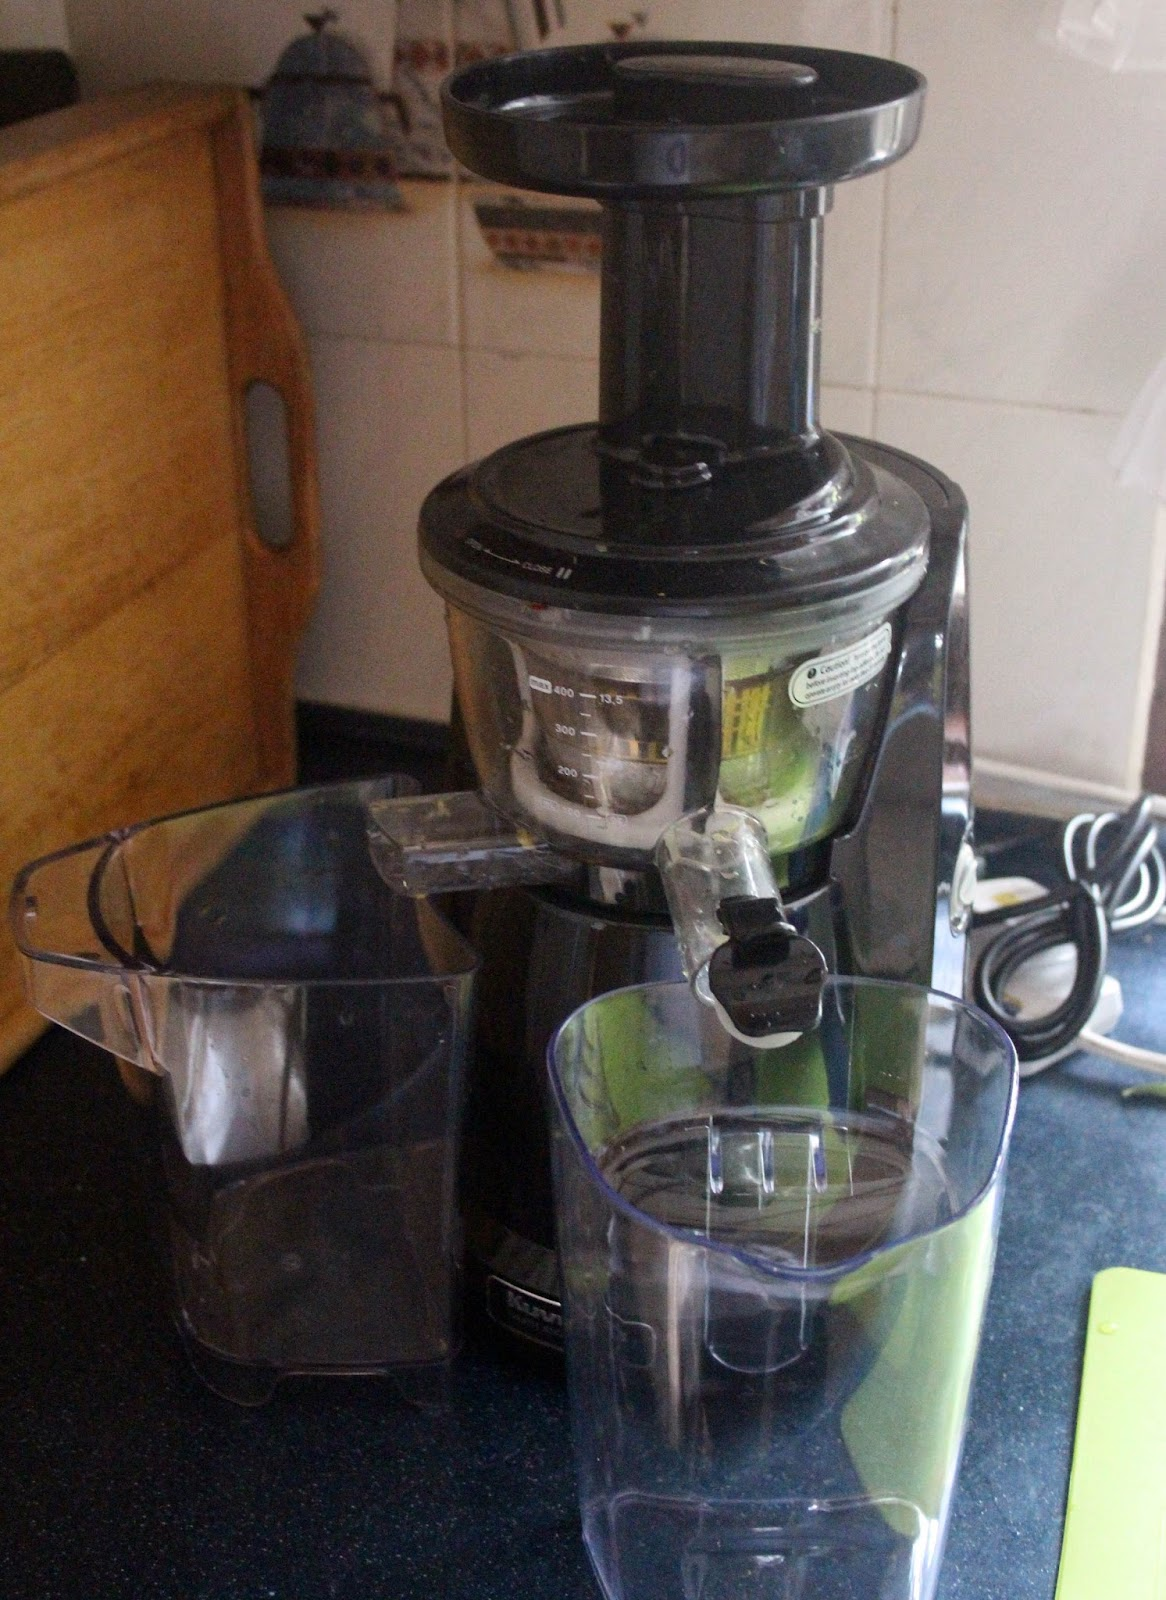 Kuvings Masticating Juicer Parts : Have Your Cake and Eat It Too: The Kuvings Silent Masticating Juicer